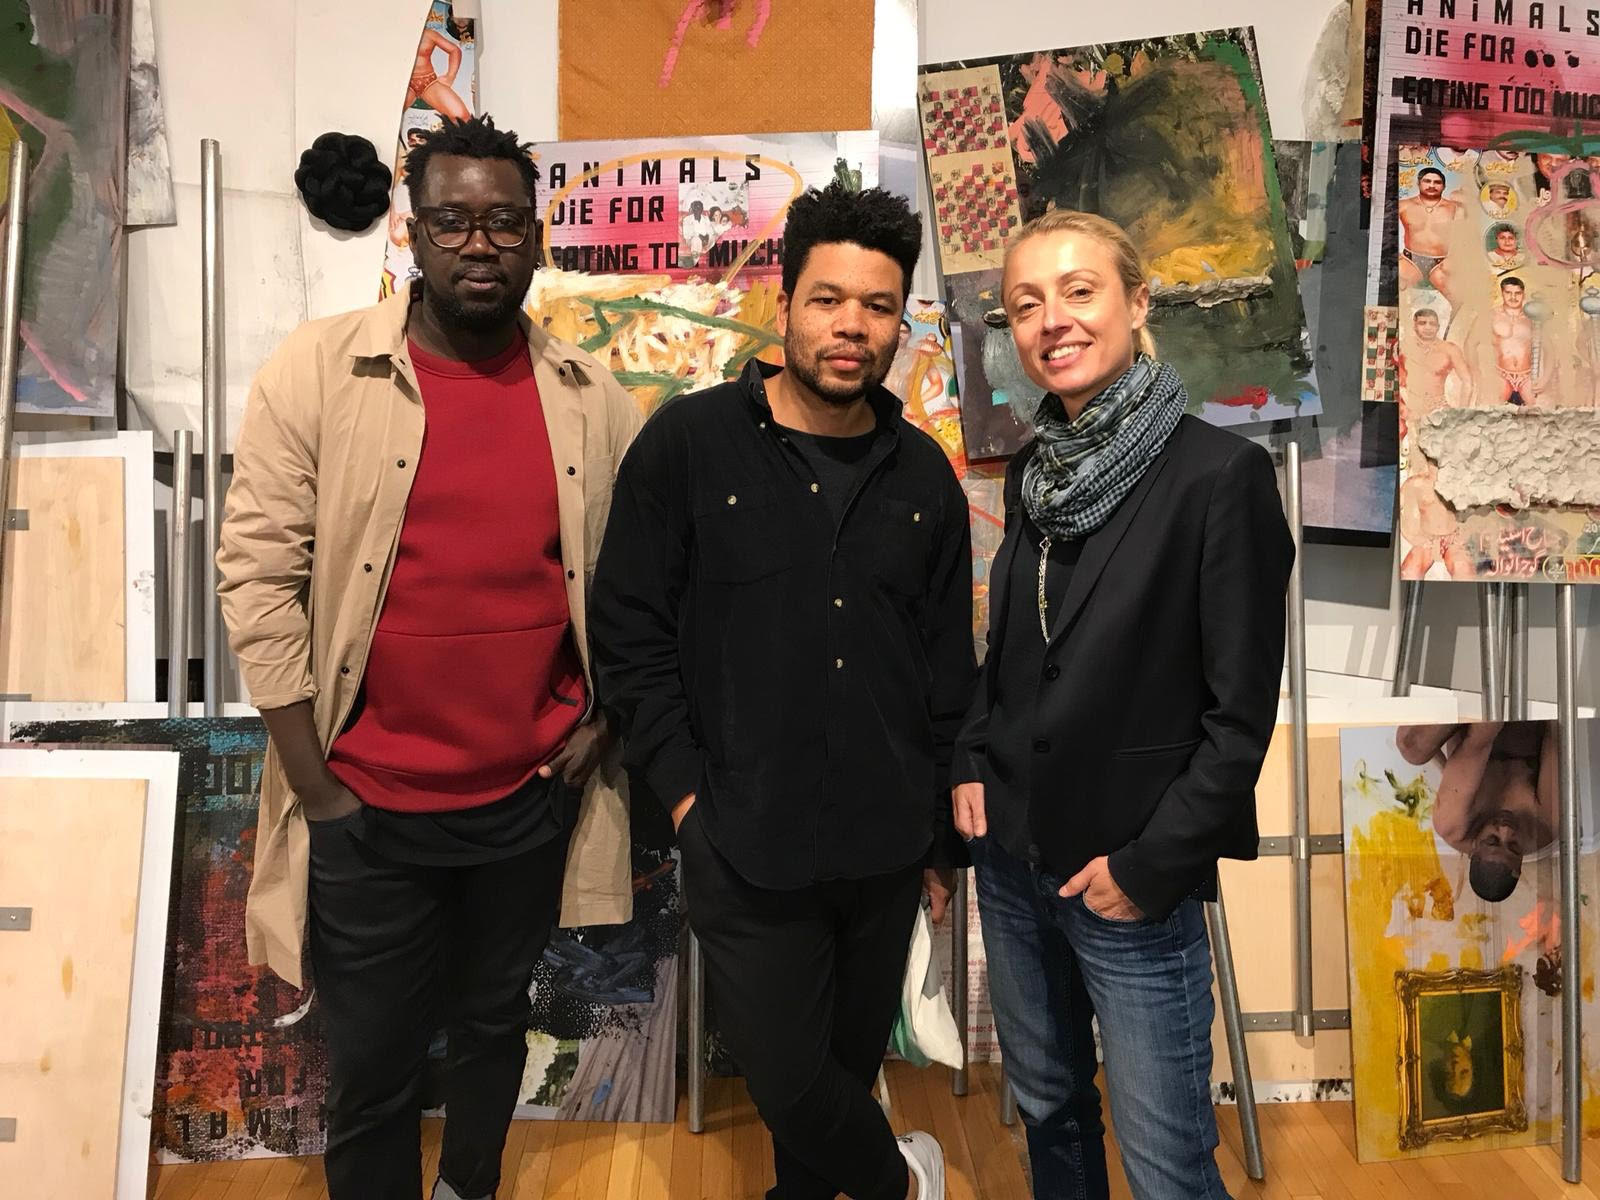 Left to Right: Modou Dieng (Curator), Oscar Murillo (Artist), Veronique Ansorge (Director at David Zwiner New York)